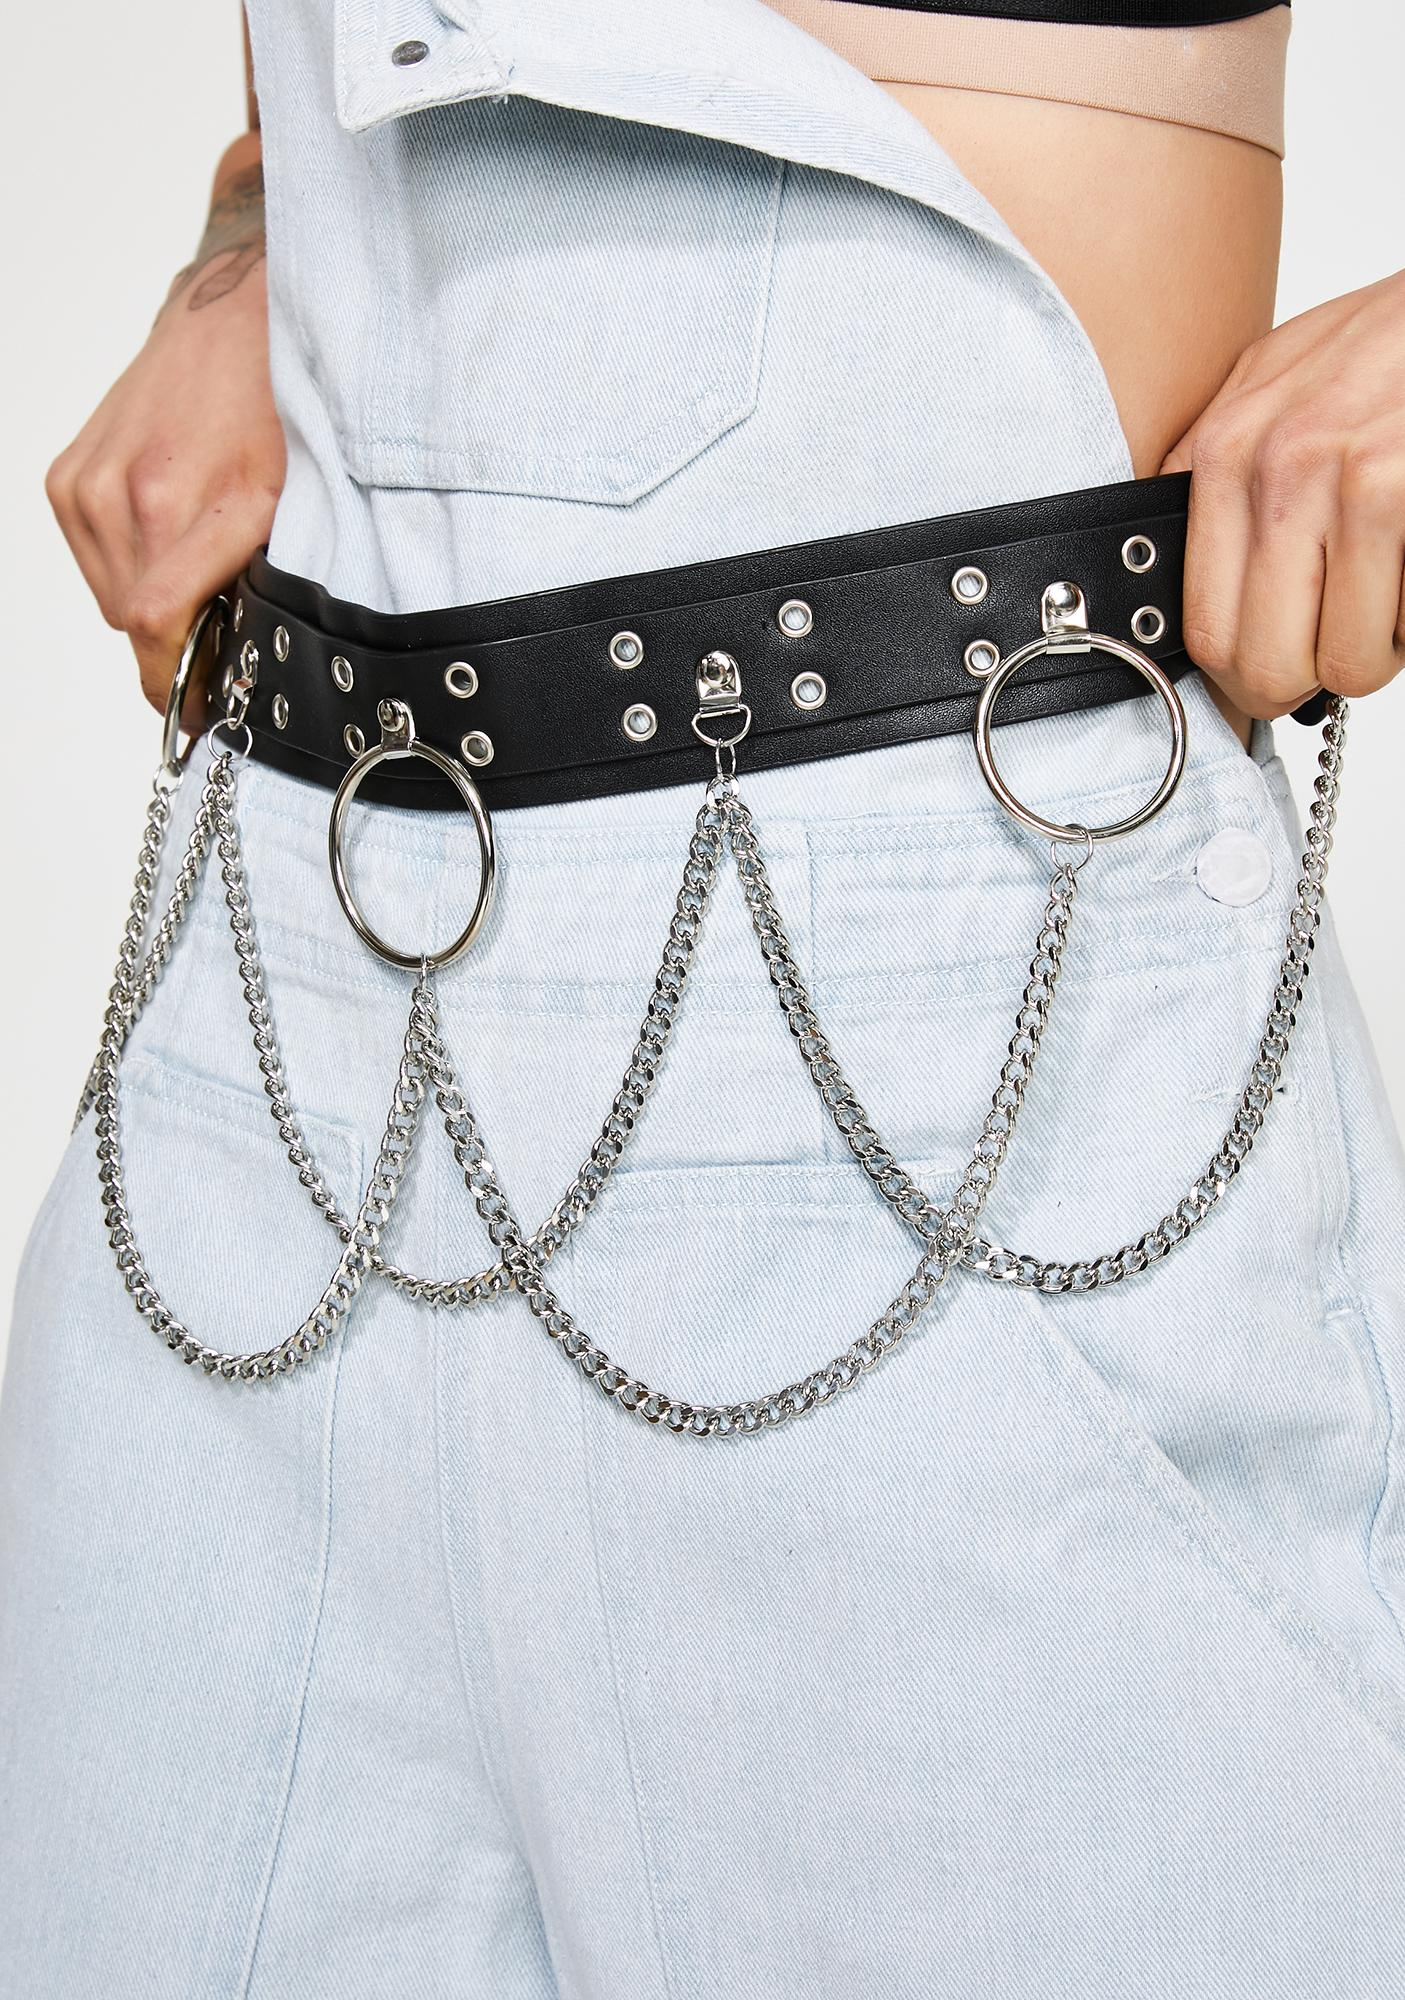 Rule Breaker Waist Belt